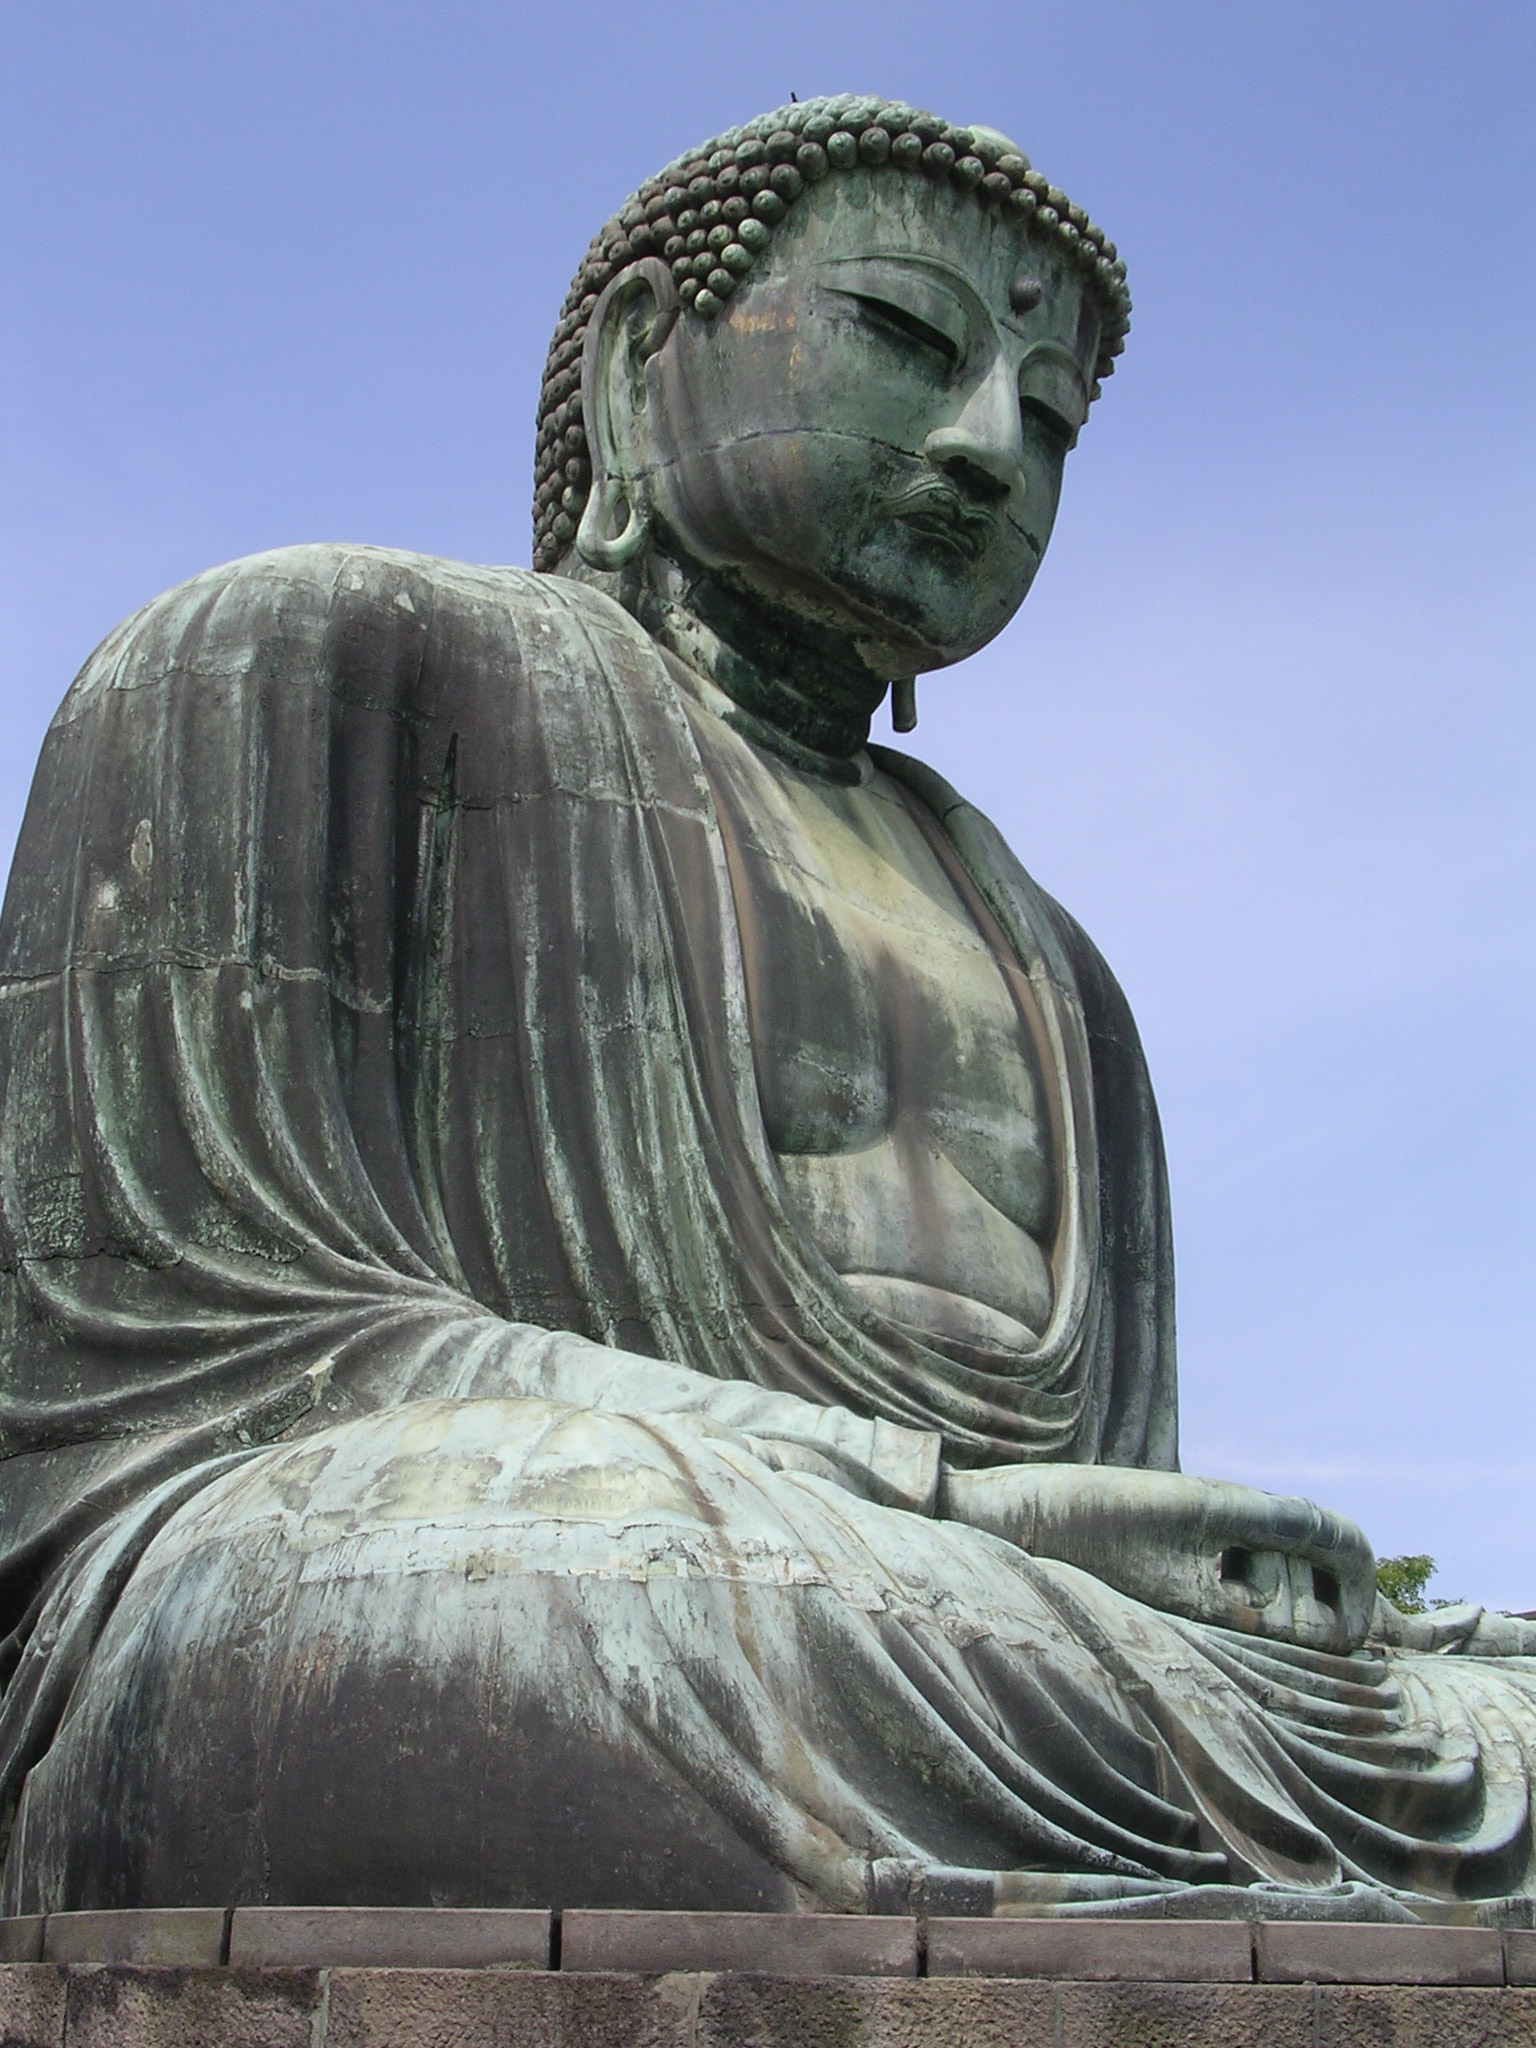 The Great Buddha of Kamakura, photo by JBG